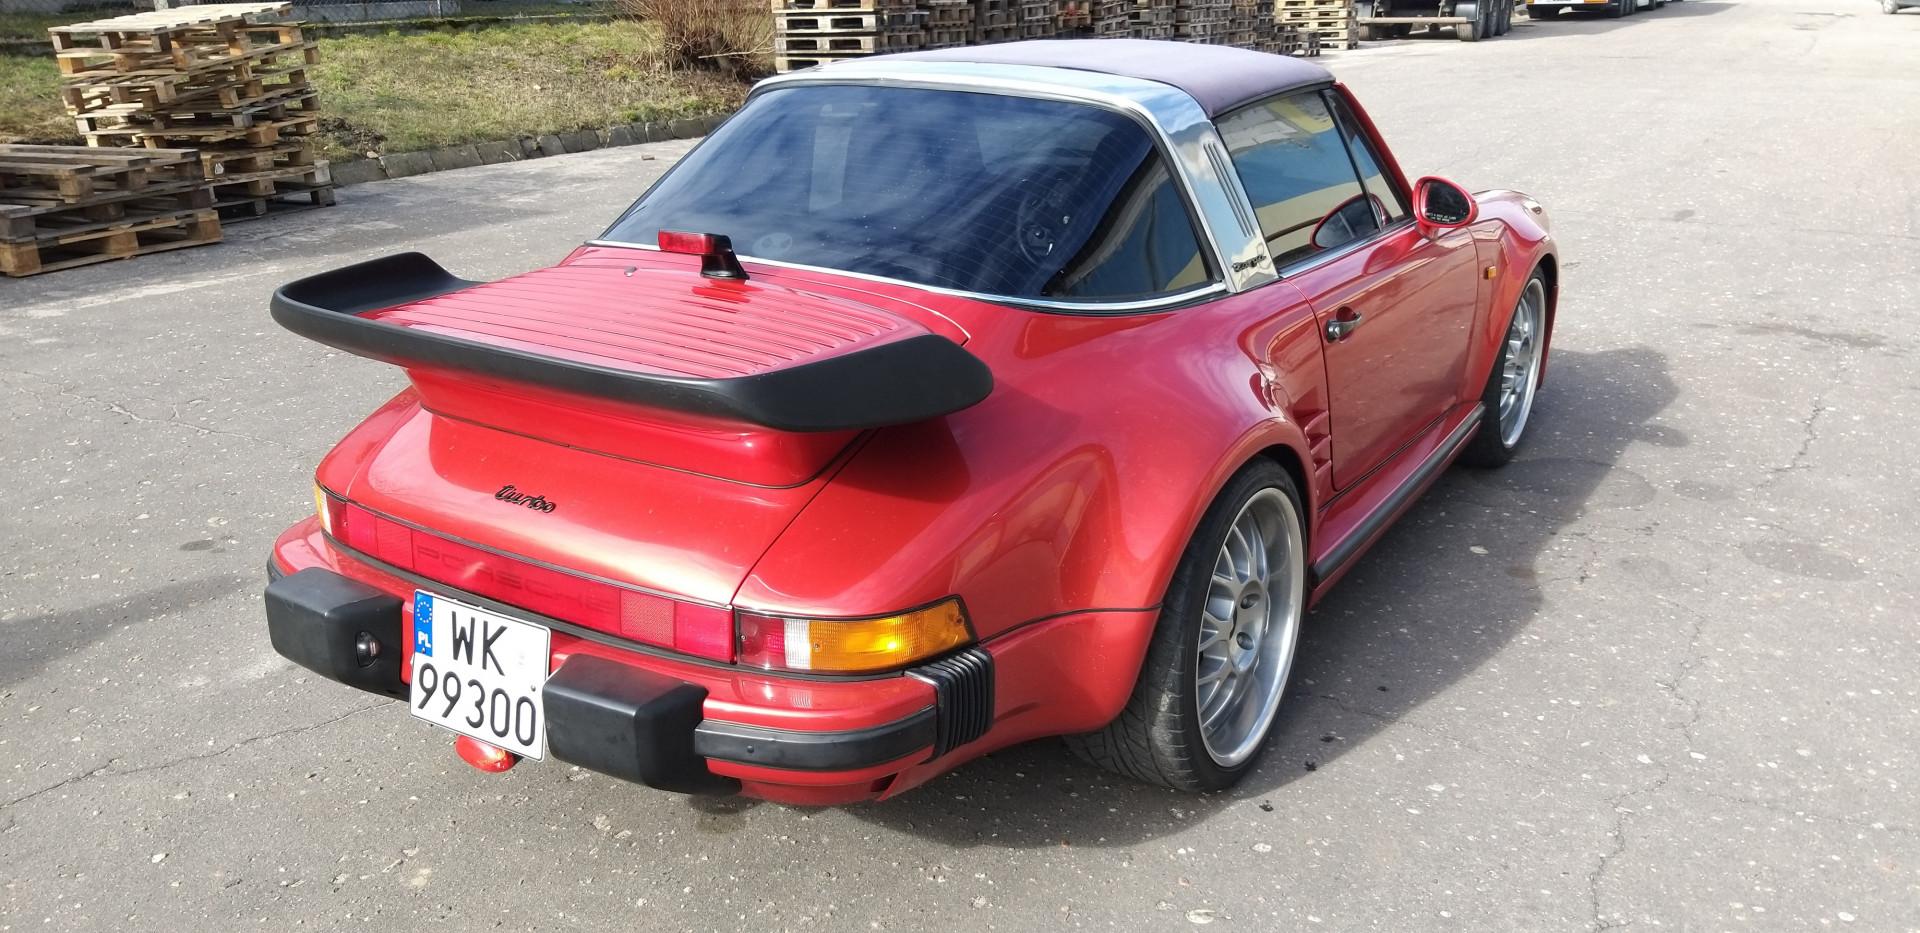 Porsche 911S 1976/77 TARGA 2.7 Turbo Look - MBB Collection